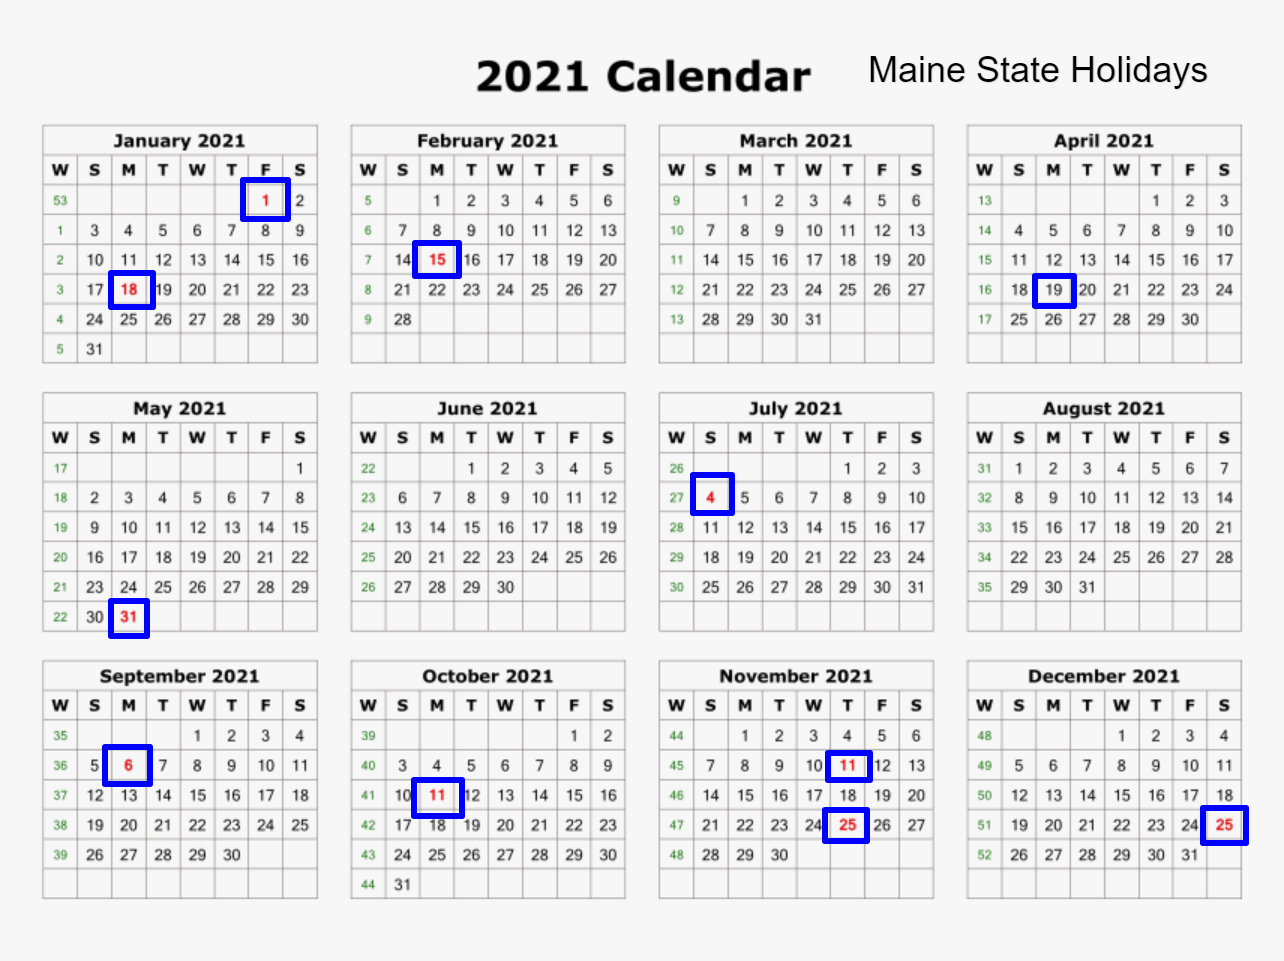 Maine State Holidays 2021 - List Of Federal & State Holidays-2021 Calendard For Vacation Schedule